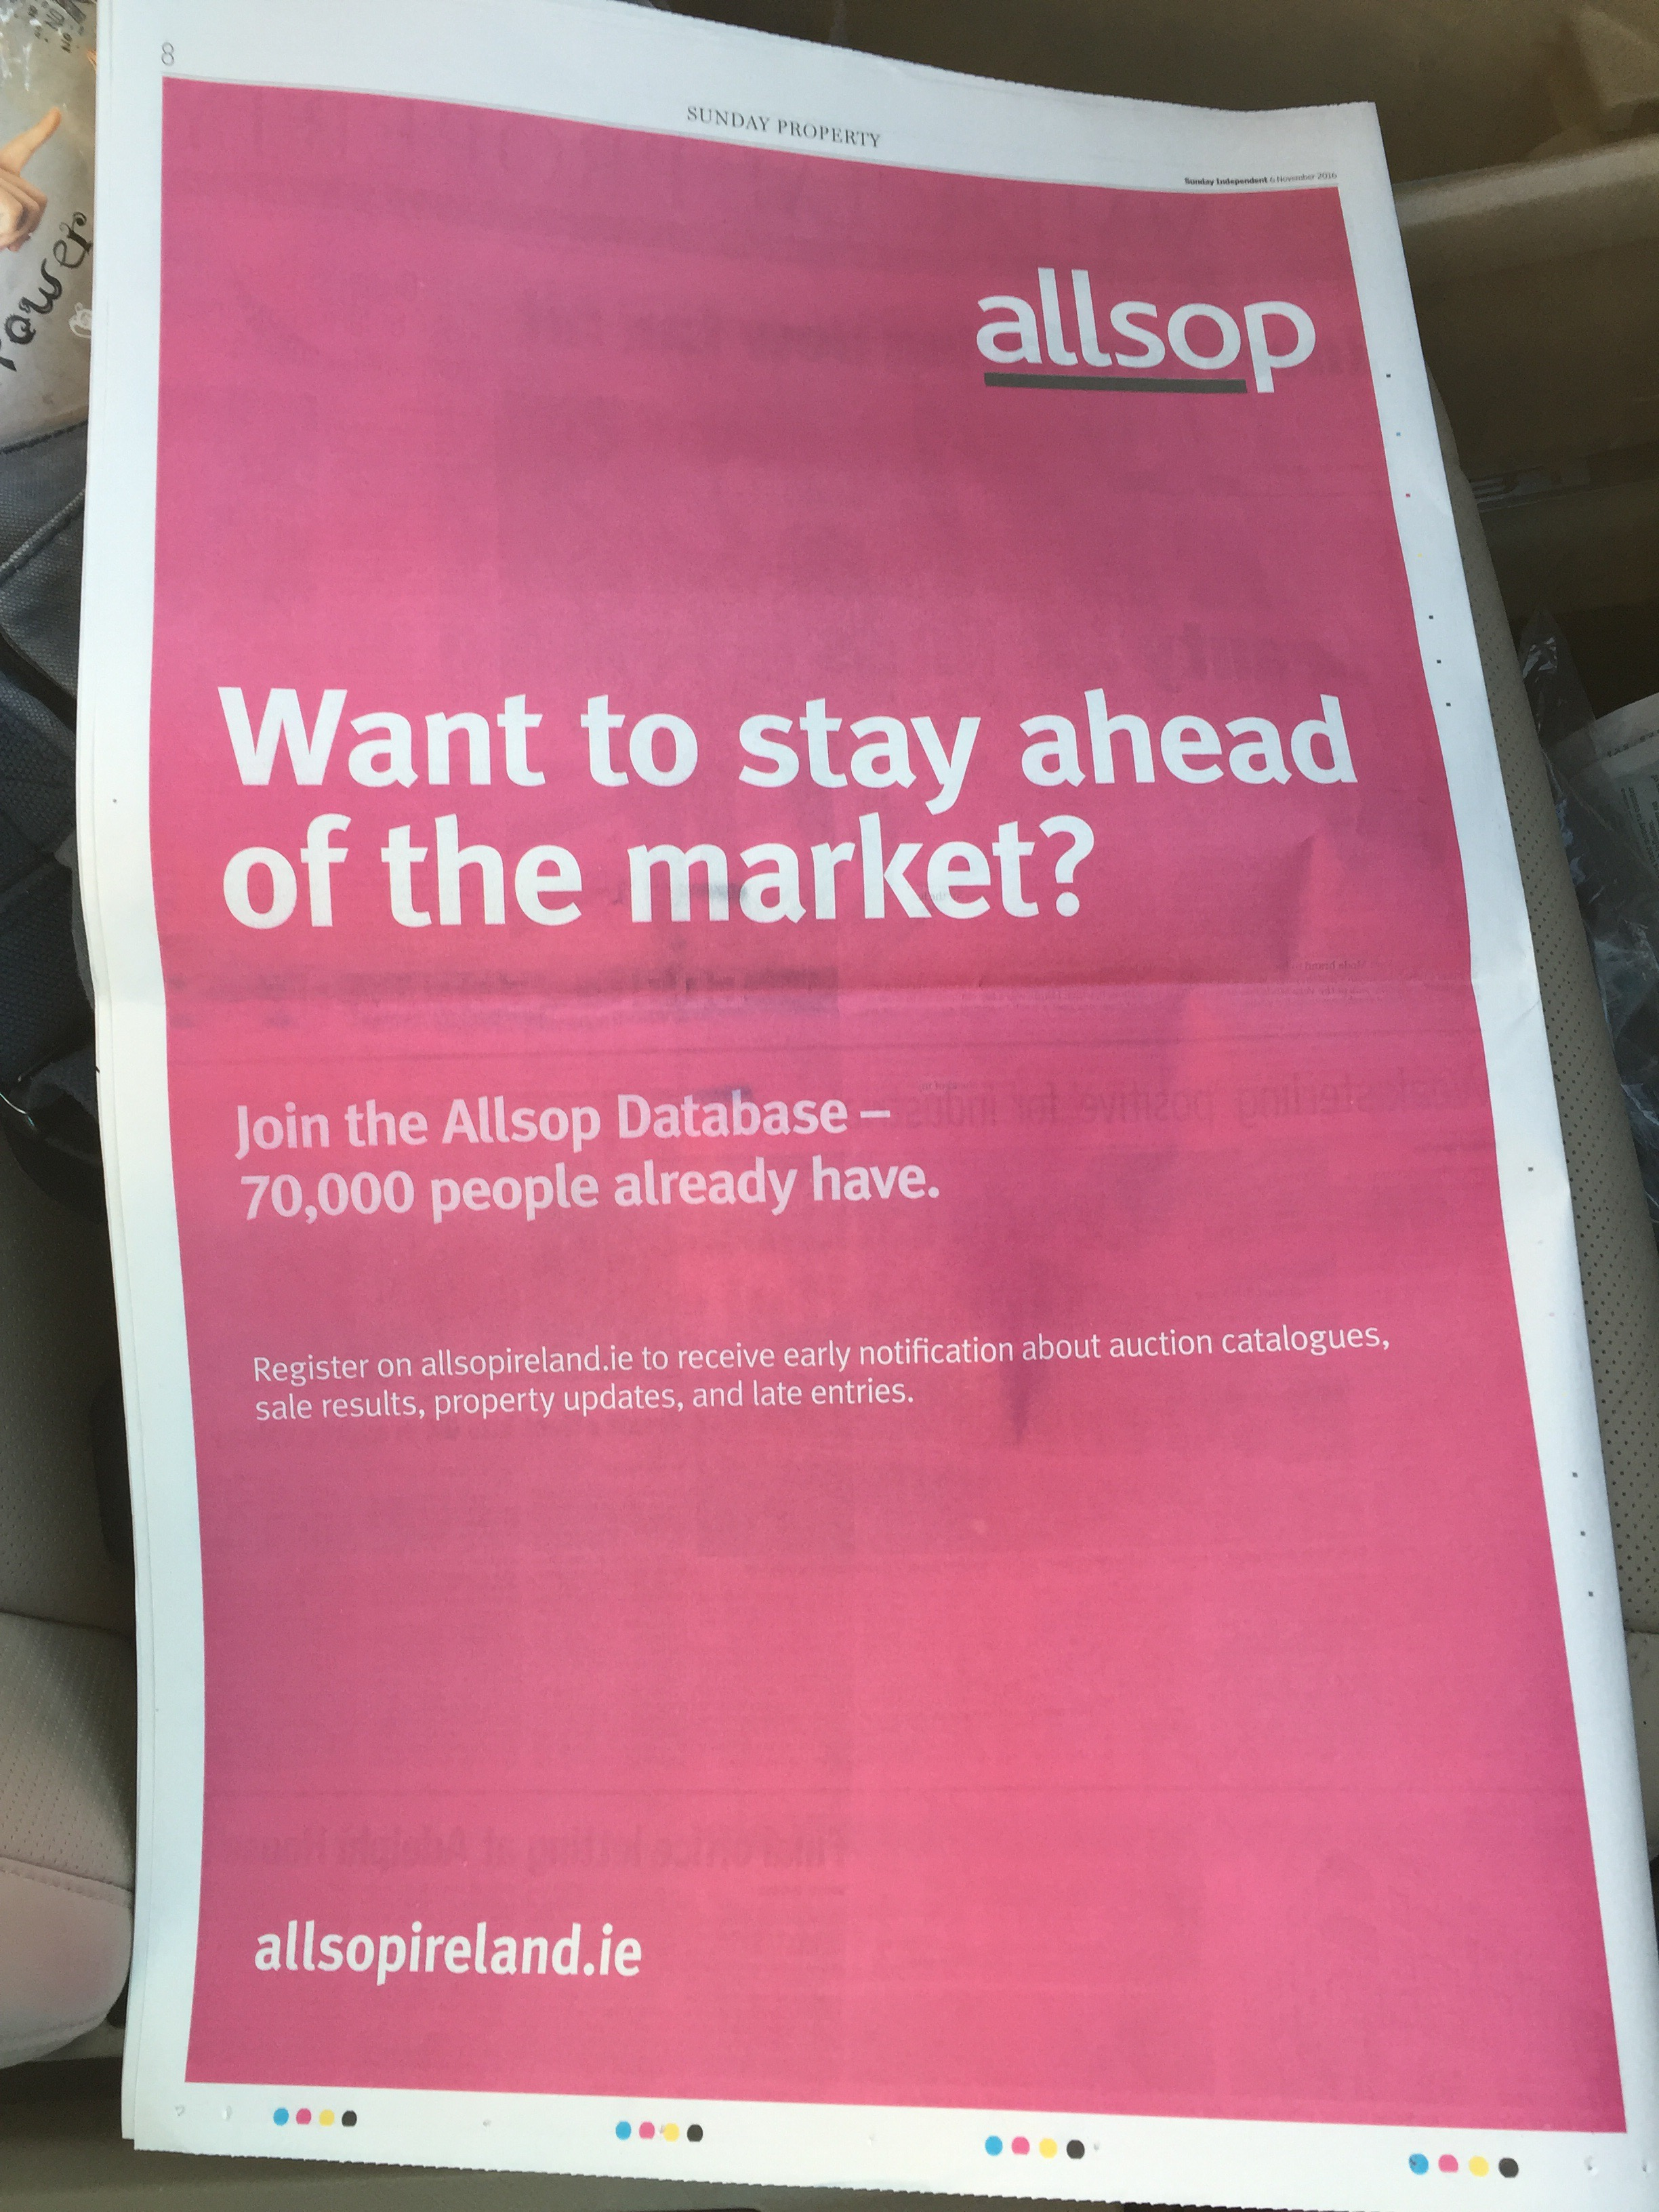 Allsop – want to stay ahead of the market?